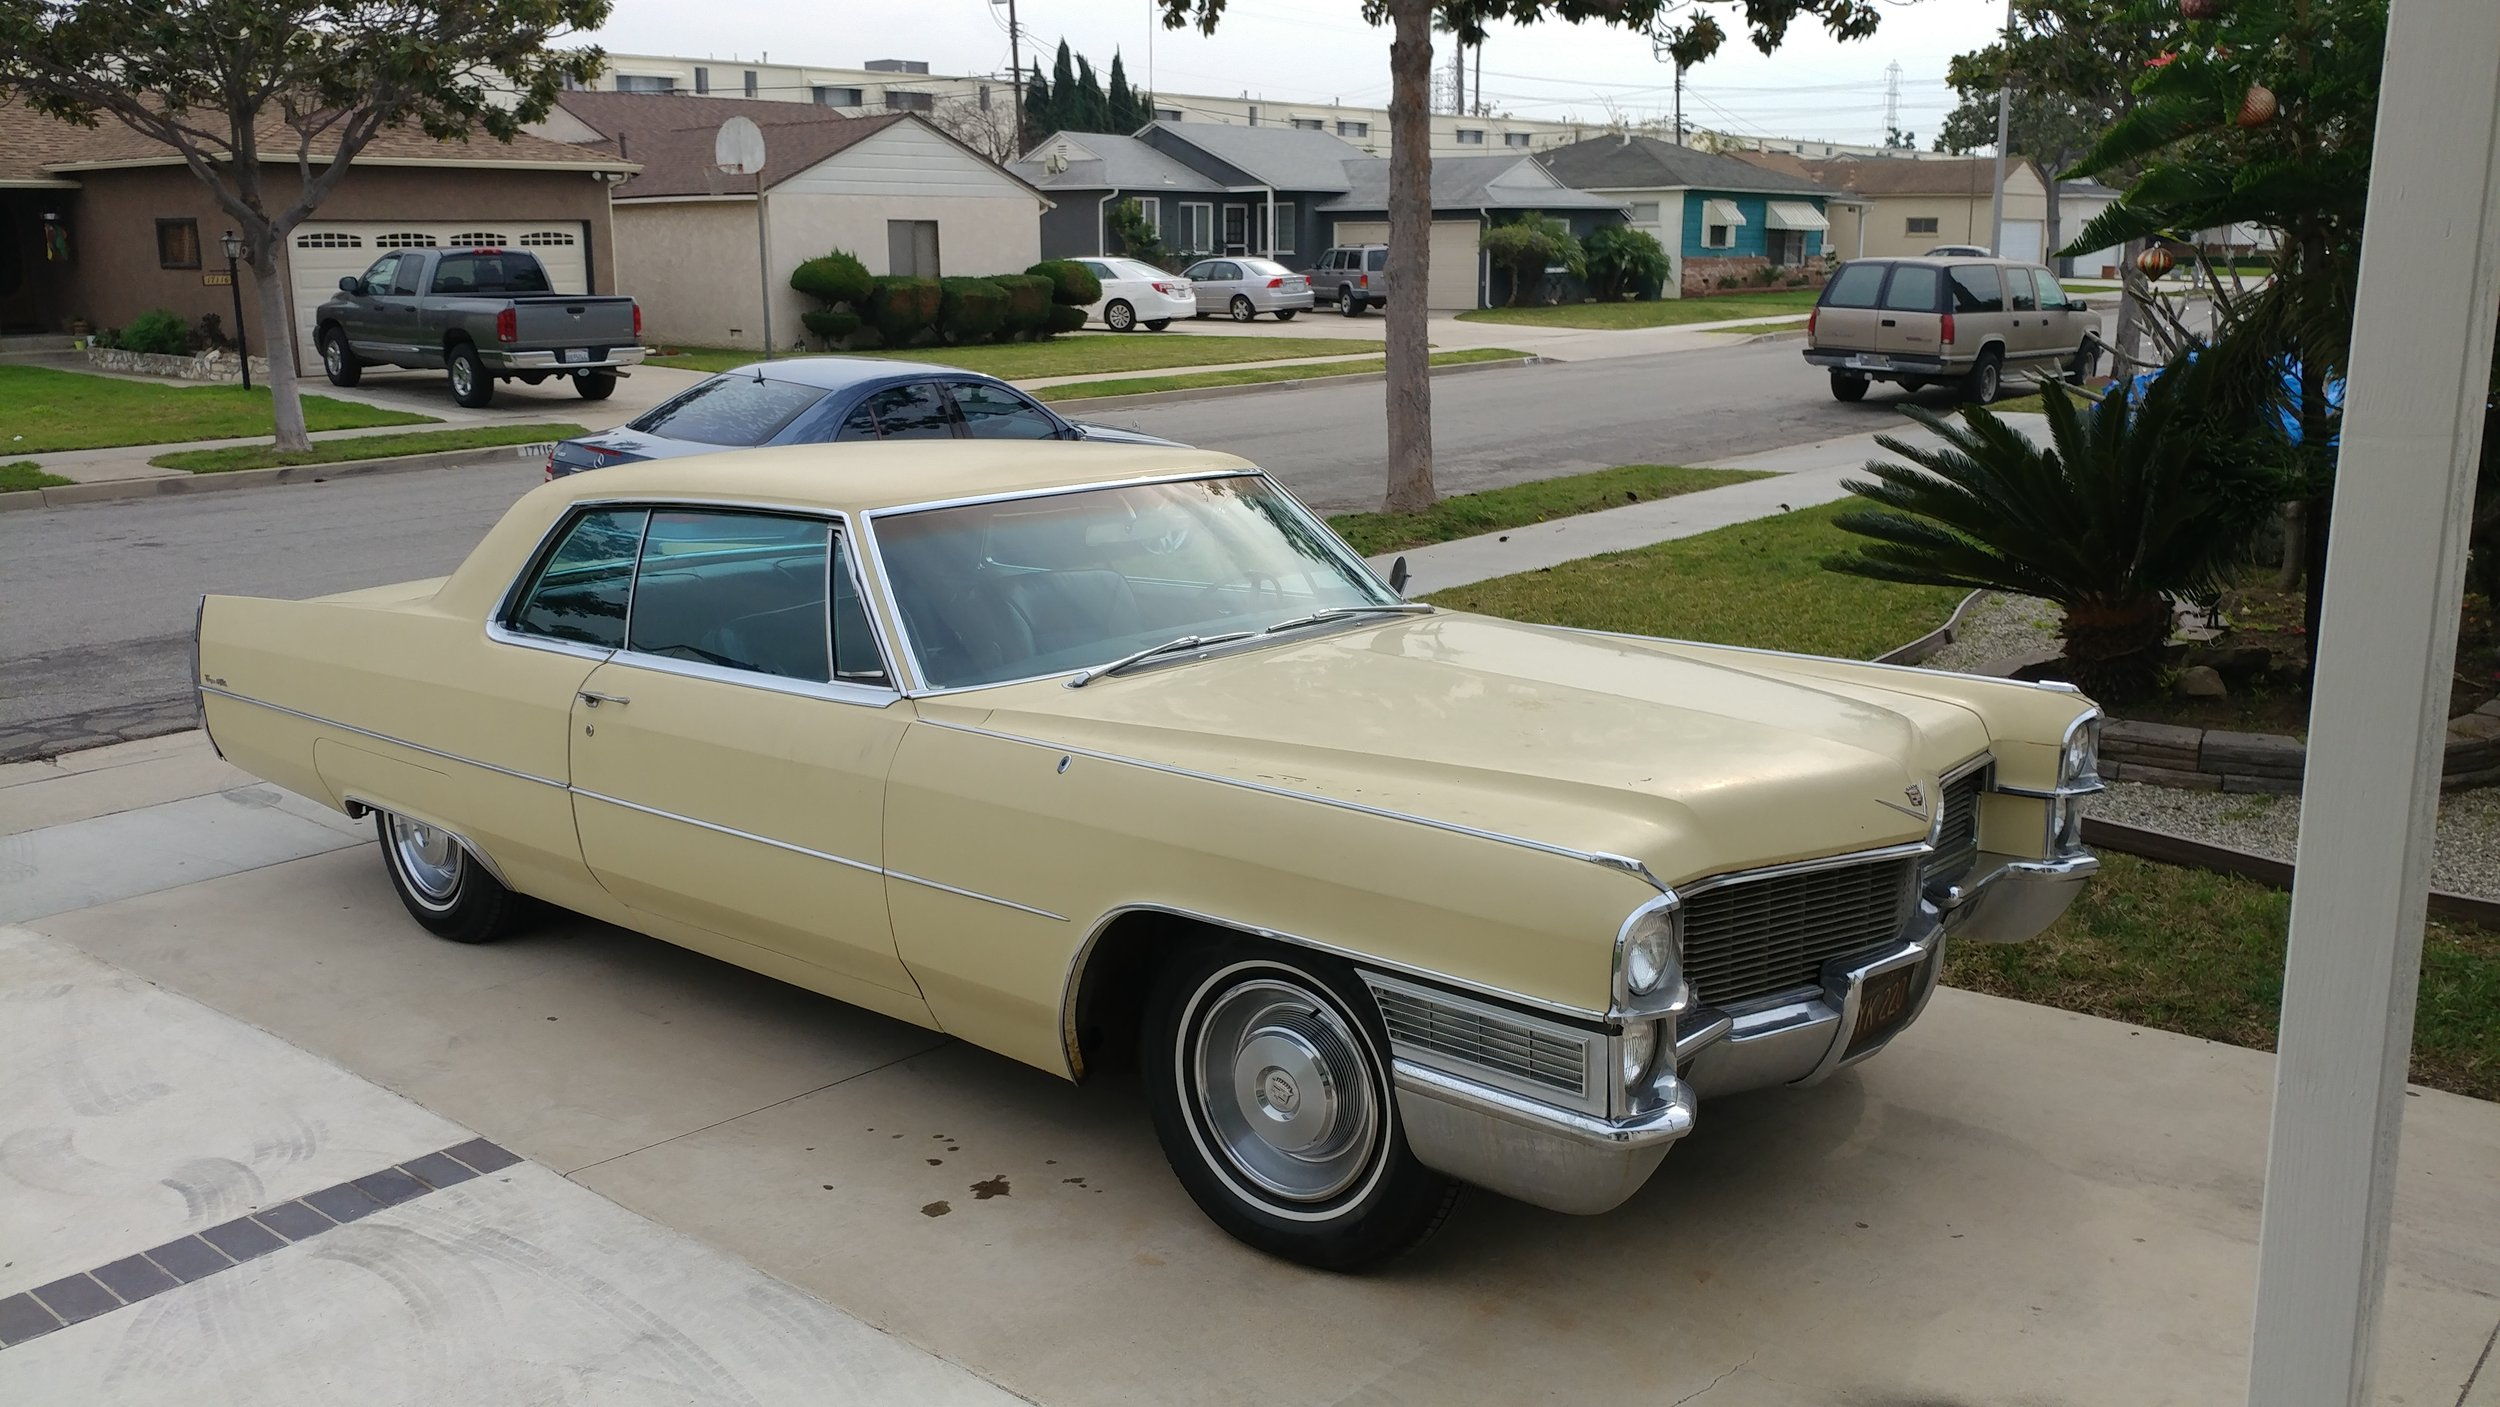 """1965 Cadillac Coupe Deville - """"This cream vehicle with navy blue interior was purchased in 1967 the same year our Parents purchased their first home. She replaced the 1955 Century Buick taking my Dad to and from work every day 30 miles one way. He enjoyed the smooth ride, the cool air conditioning, and plush leather seats."""""""